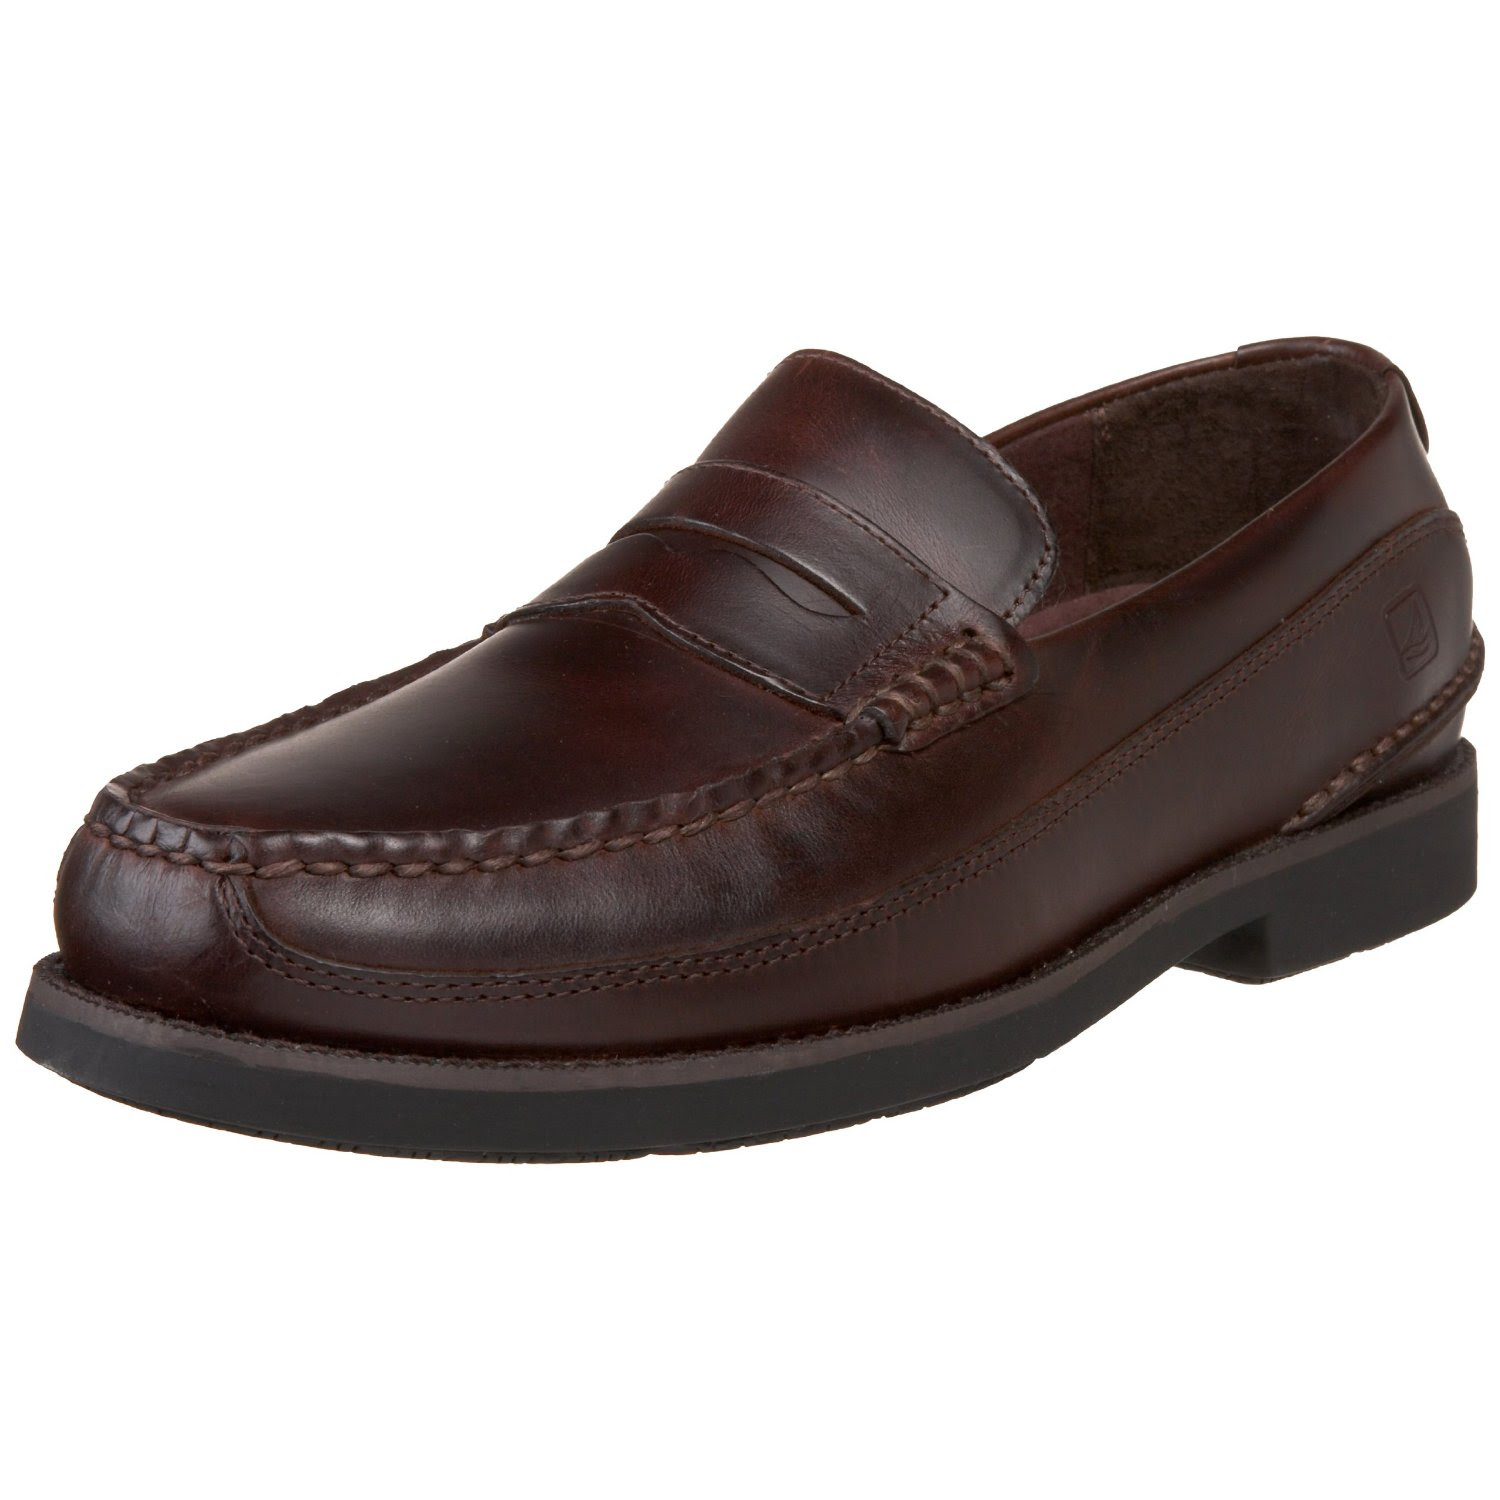 Sperry Top-sider Mens Seaport Penny Loafer in Brown for ...